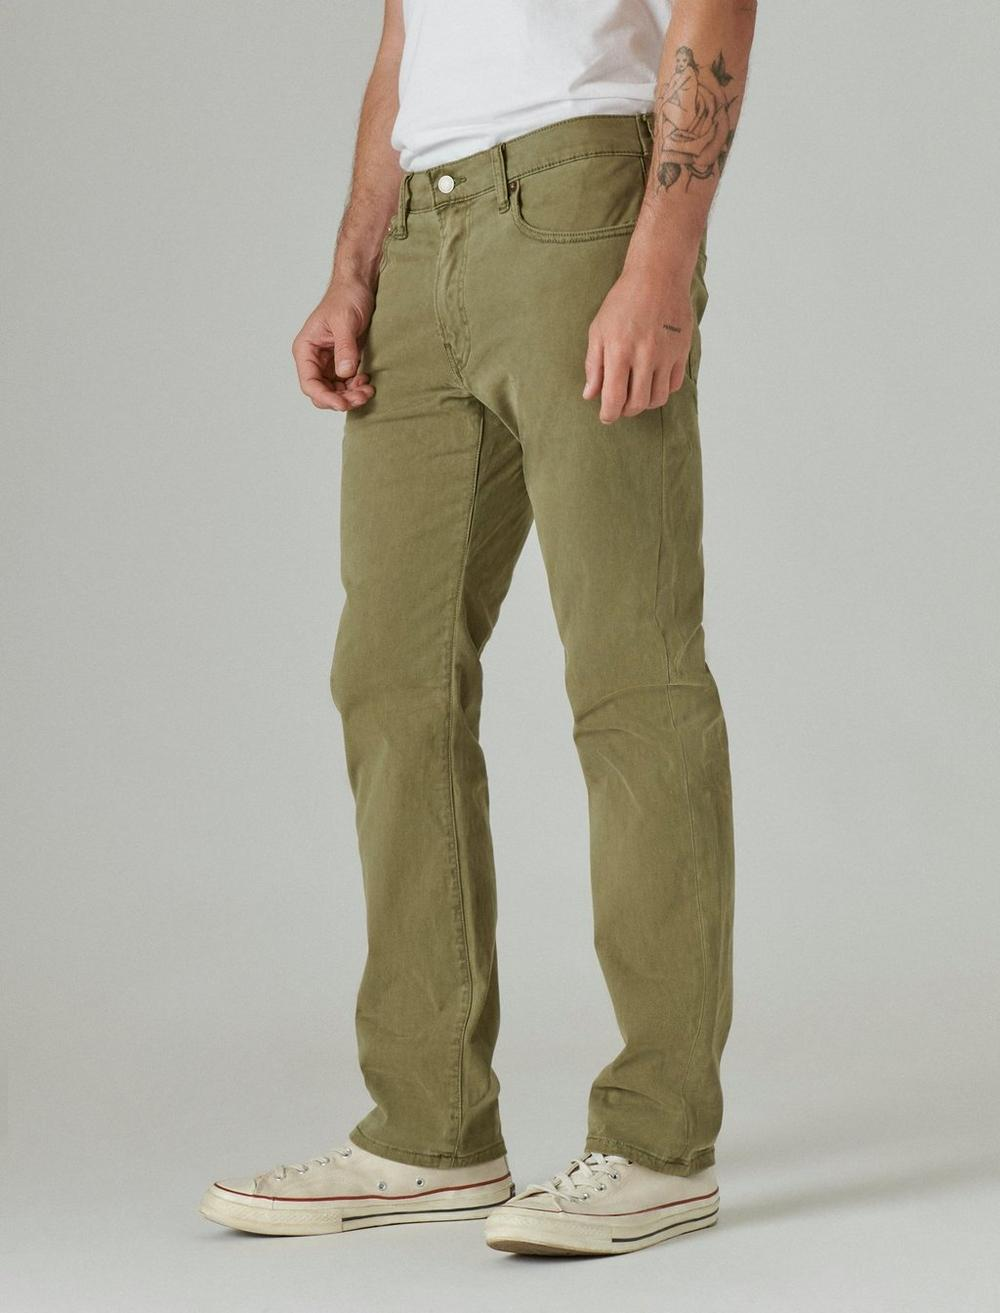 410 ATHLETIC STRAIGHT SATEEN STRETCH JEAN, image 5